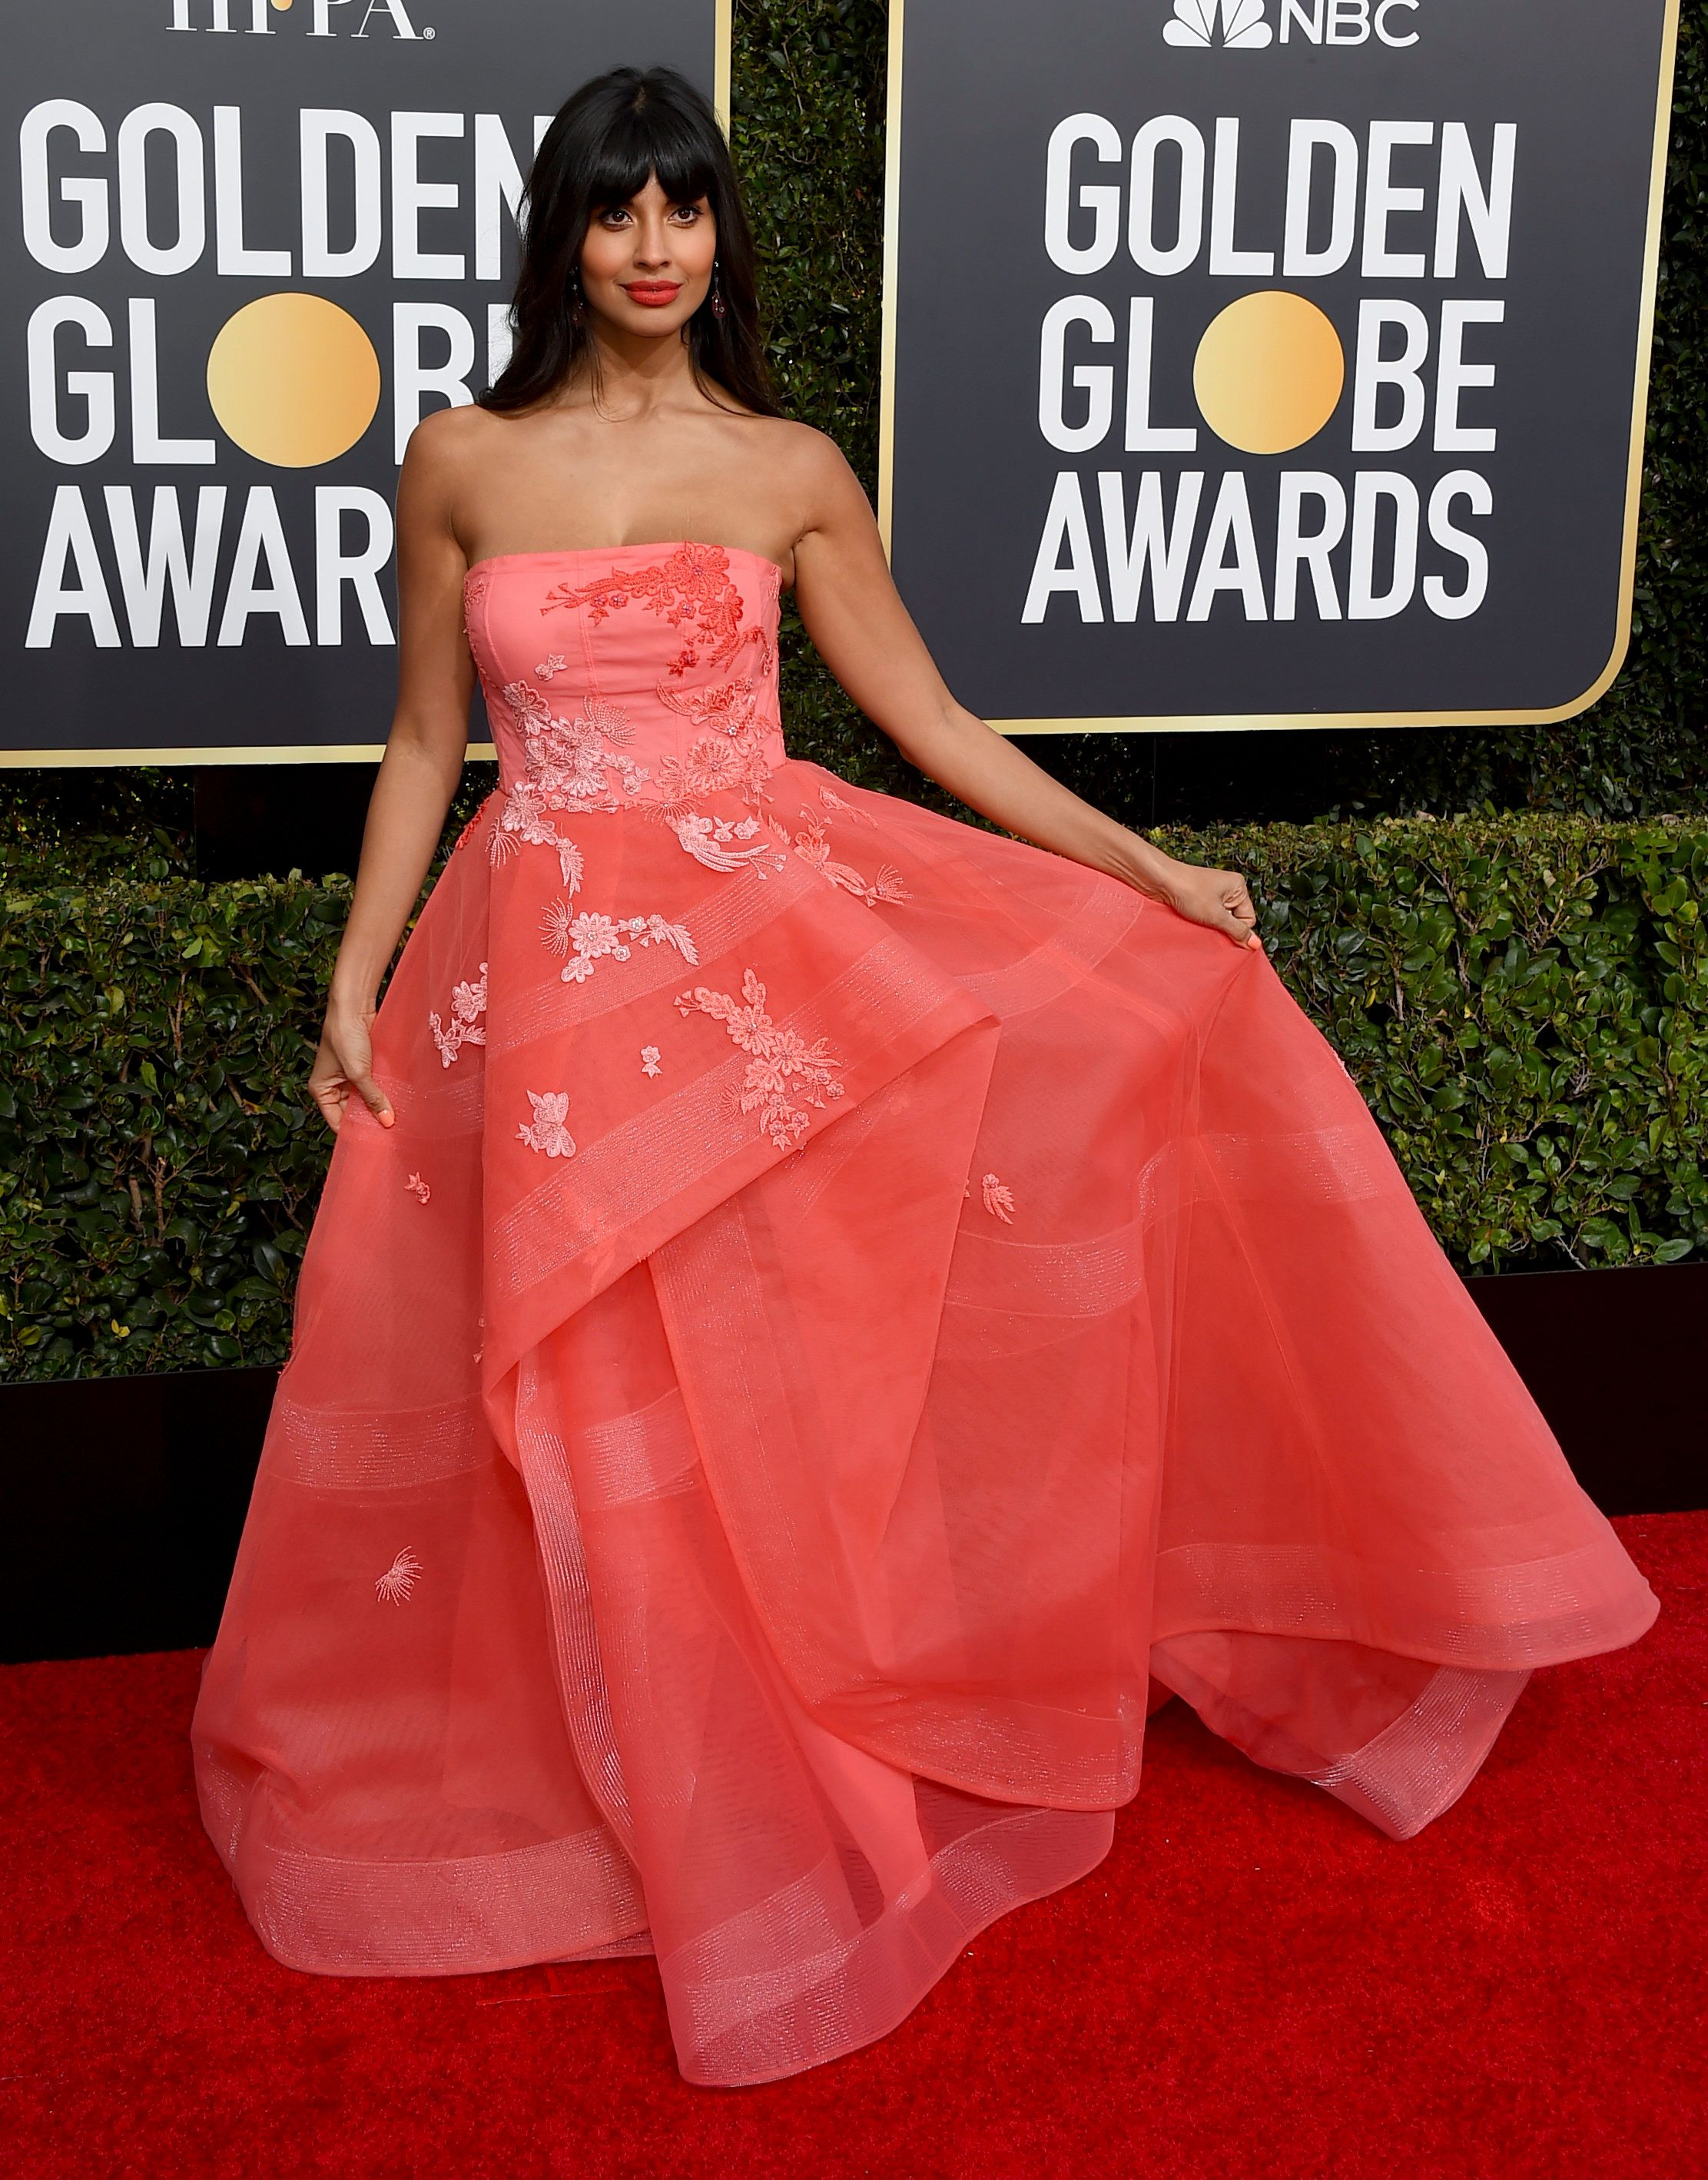 Jameela Jamil arrives at the 76th annual Golden Globe Awards at the Beverly Hilton Hotel on Sunday, Jan. 6, 2019, in Beverly Hills, Calif. (Photo by Jordan Strauss/Invision/AP)